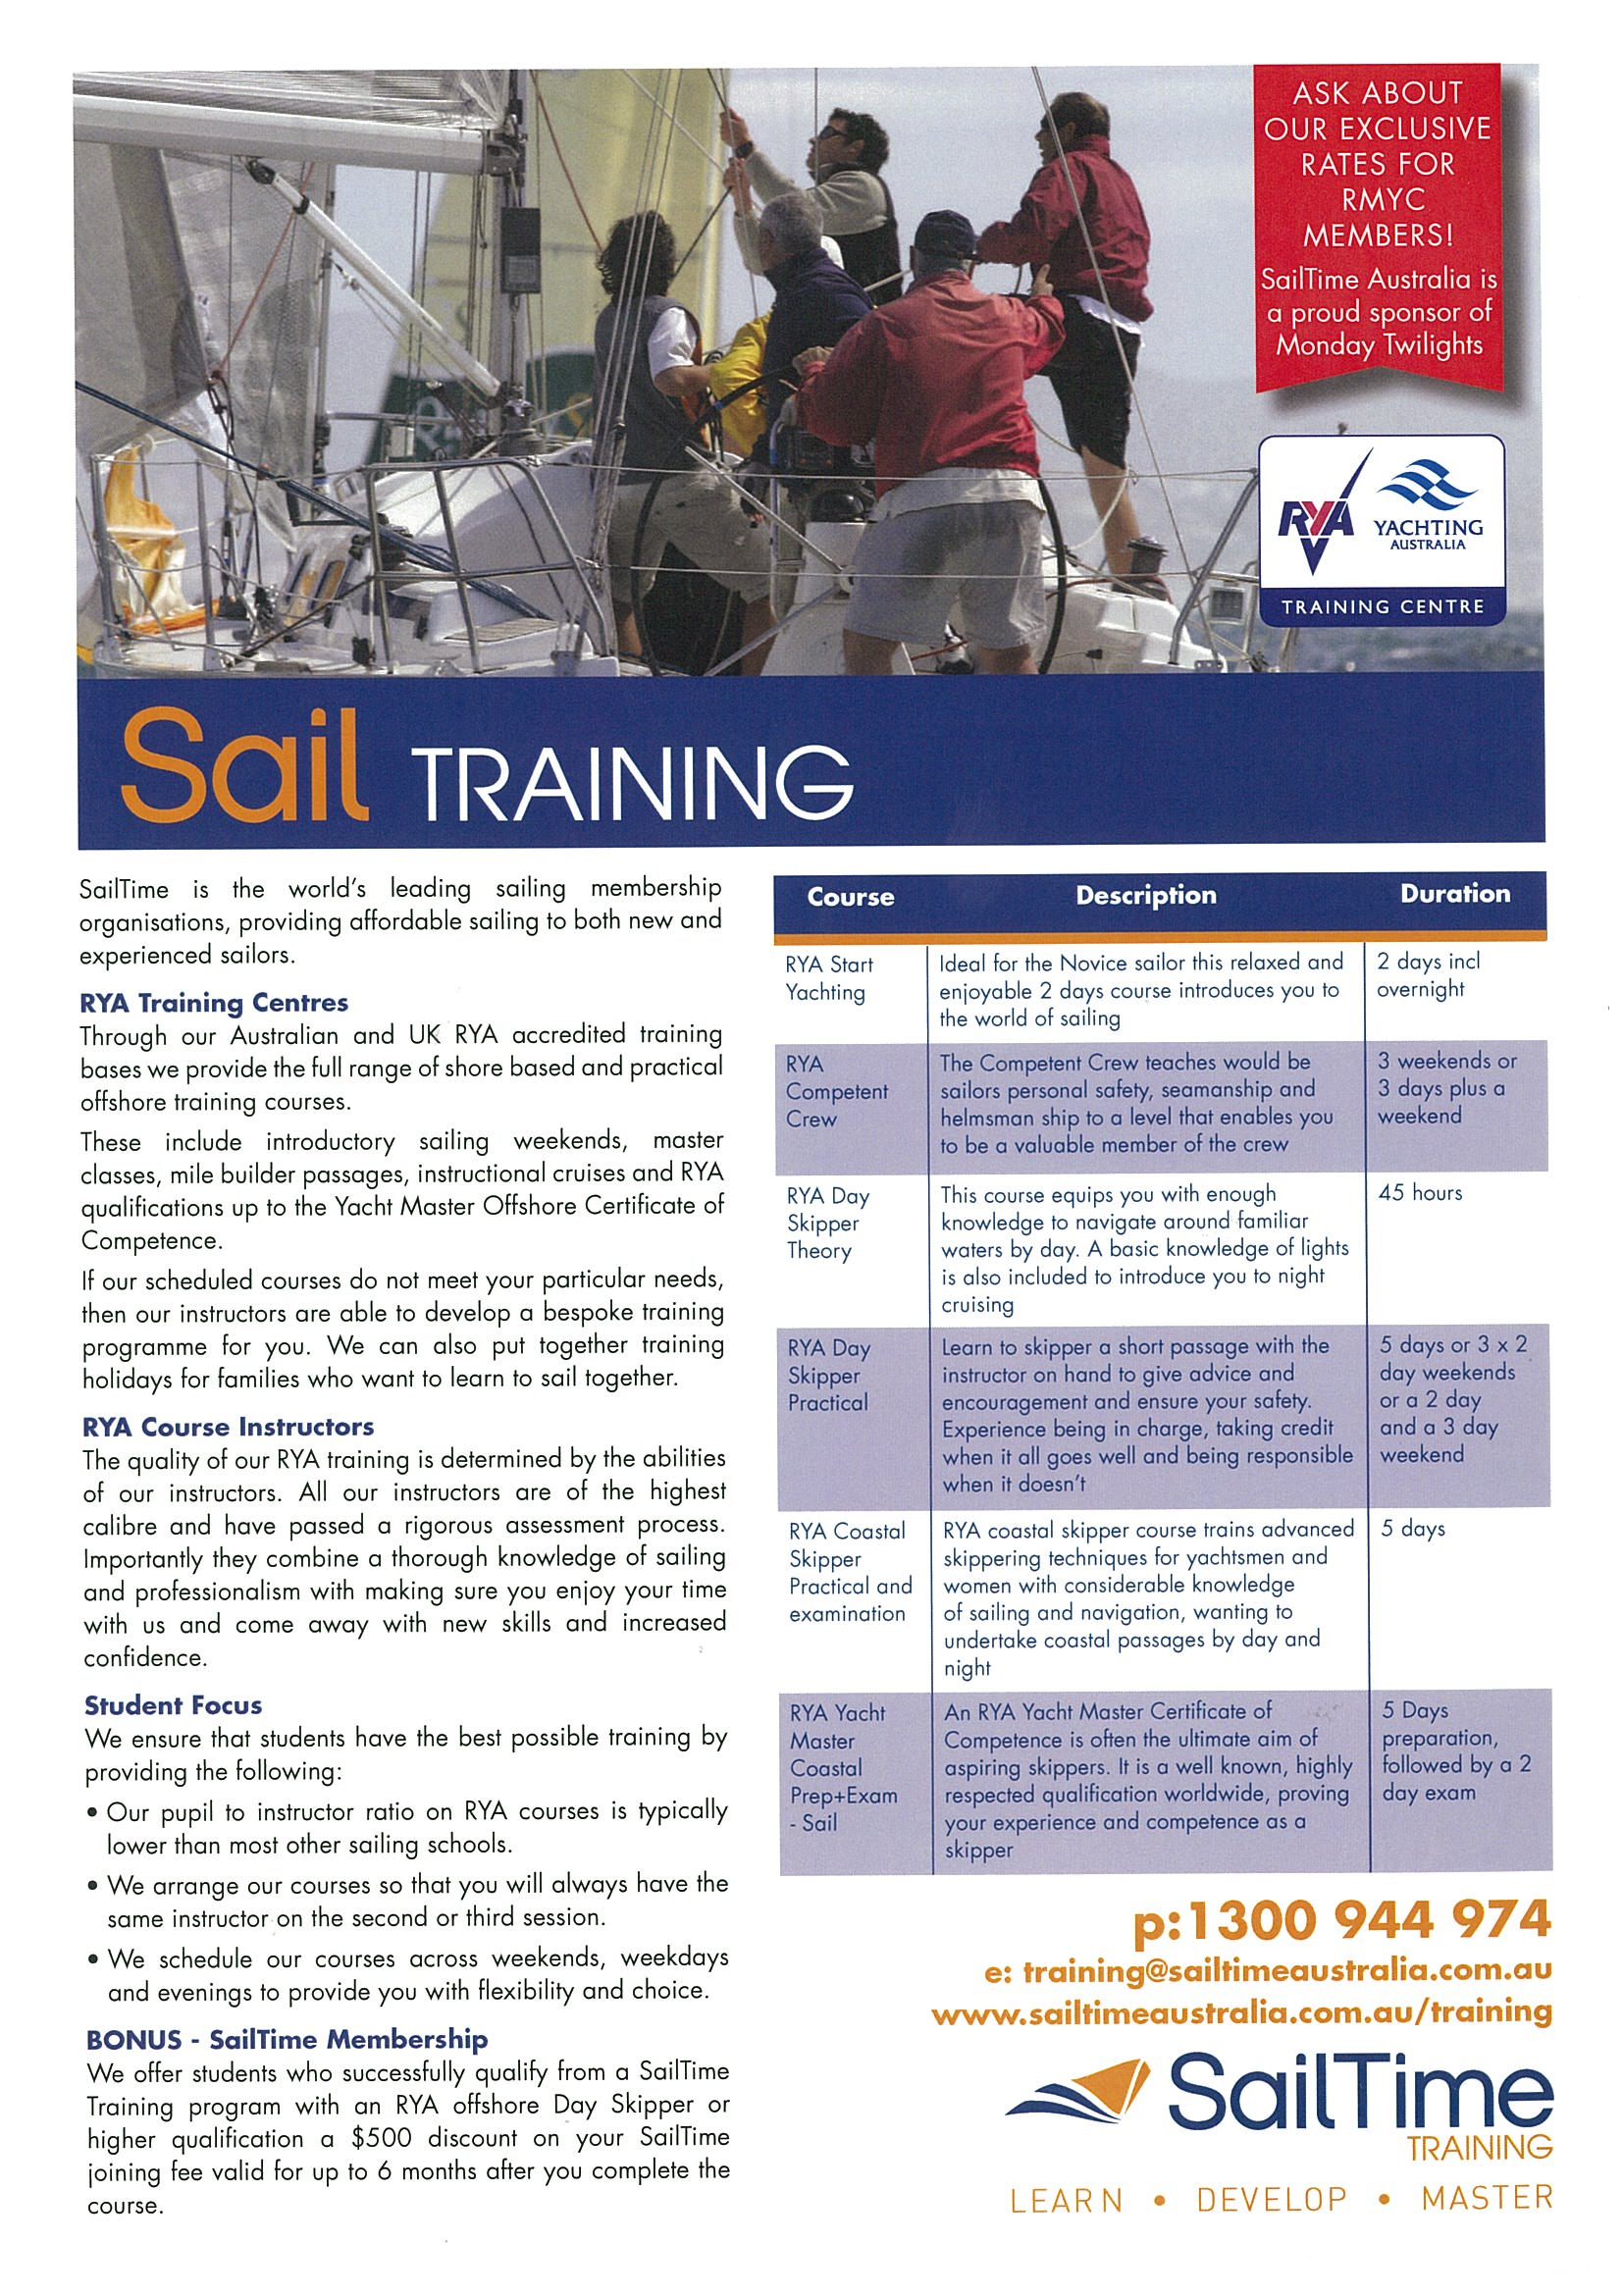 sail training_1